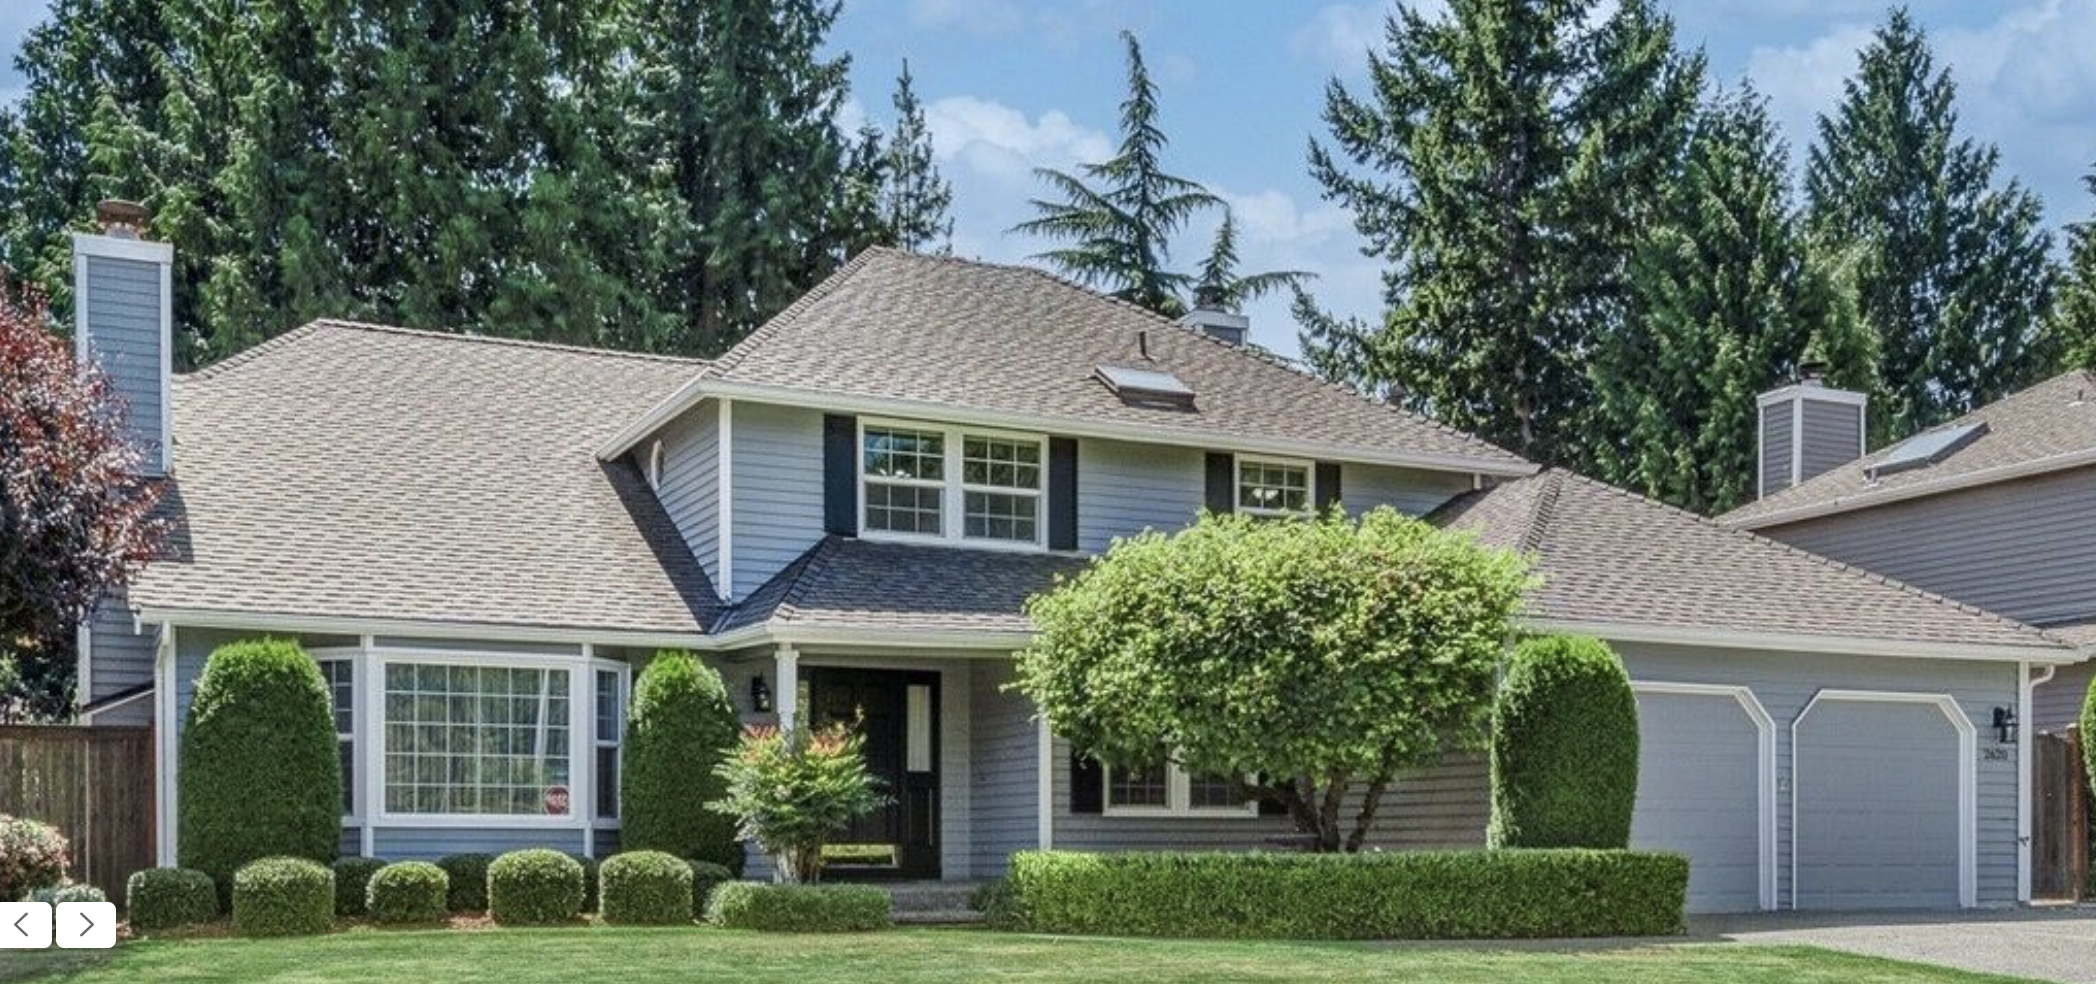 New Listing in The Mill Creek Highlands - This beautiful 2,826 square foot home features 5 bedroom, 3 full bath rooms